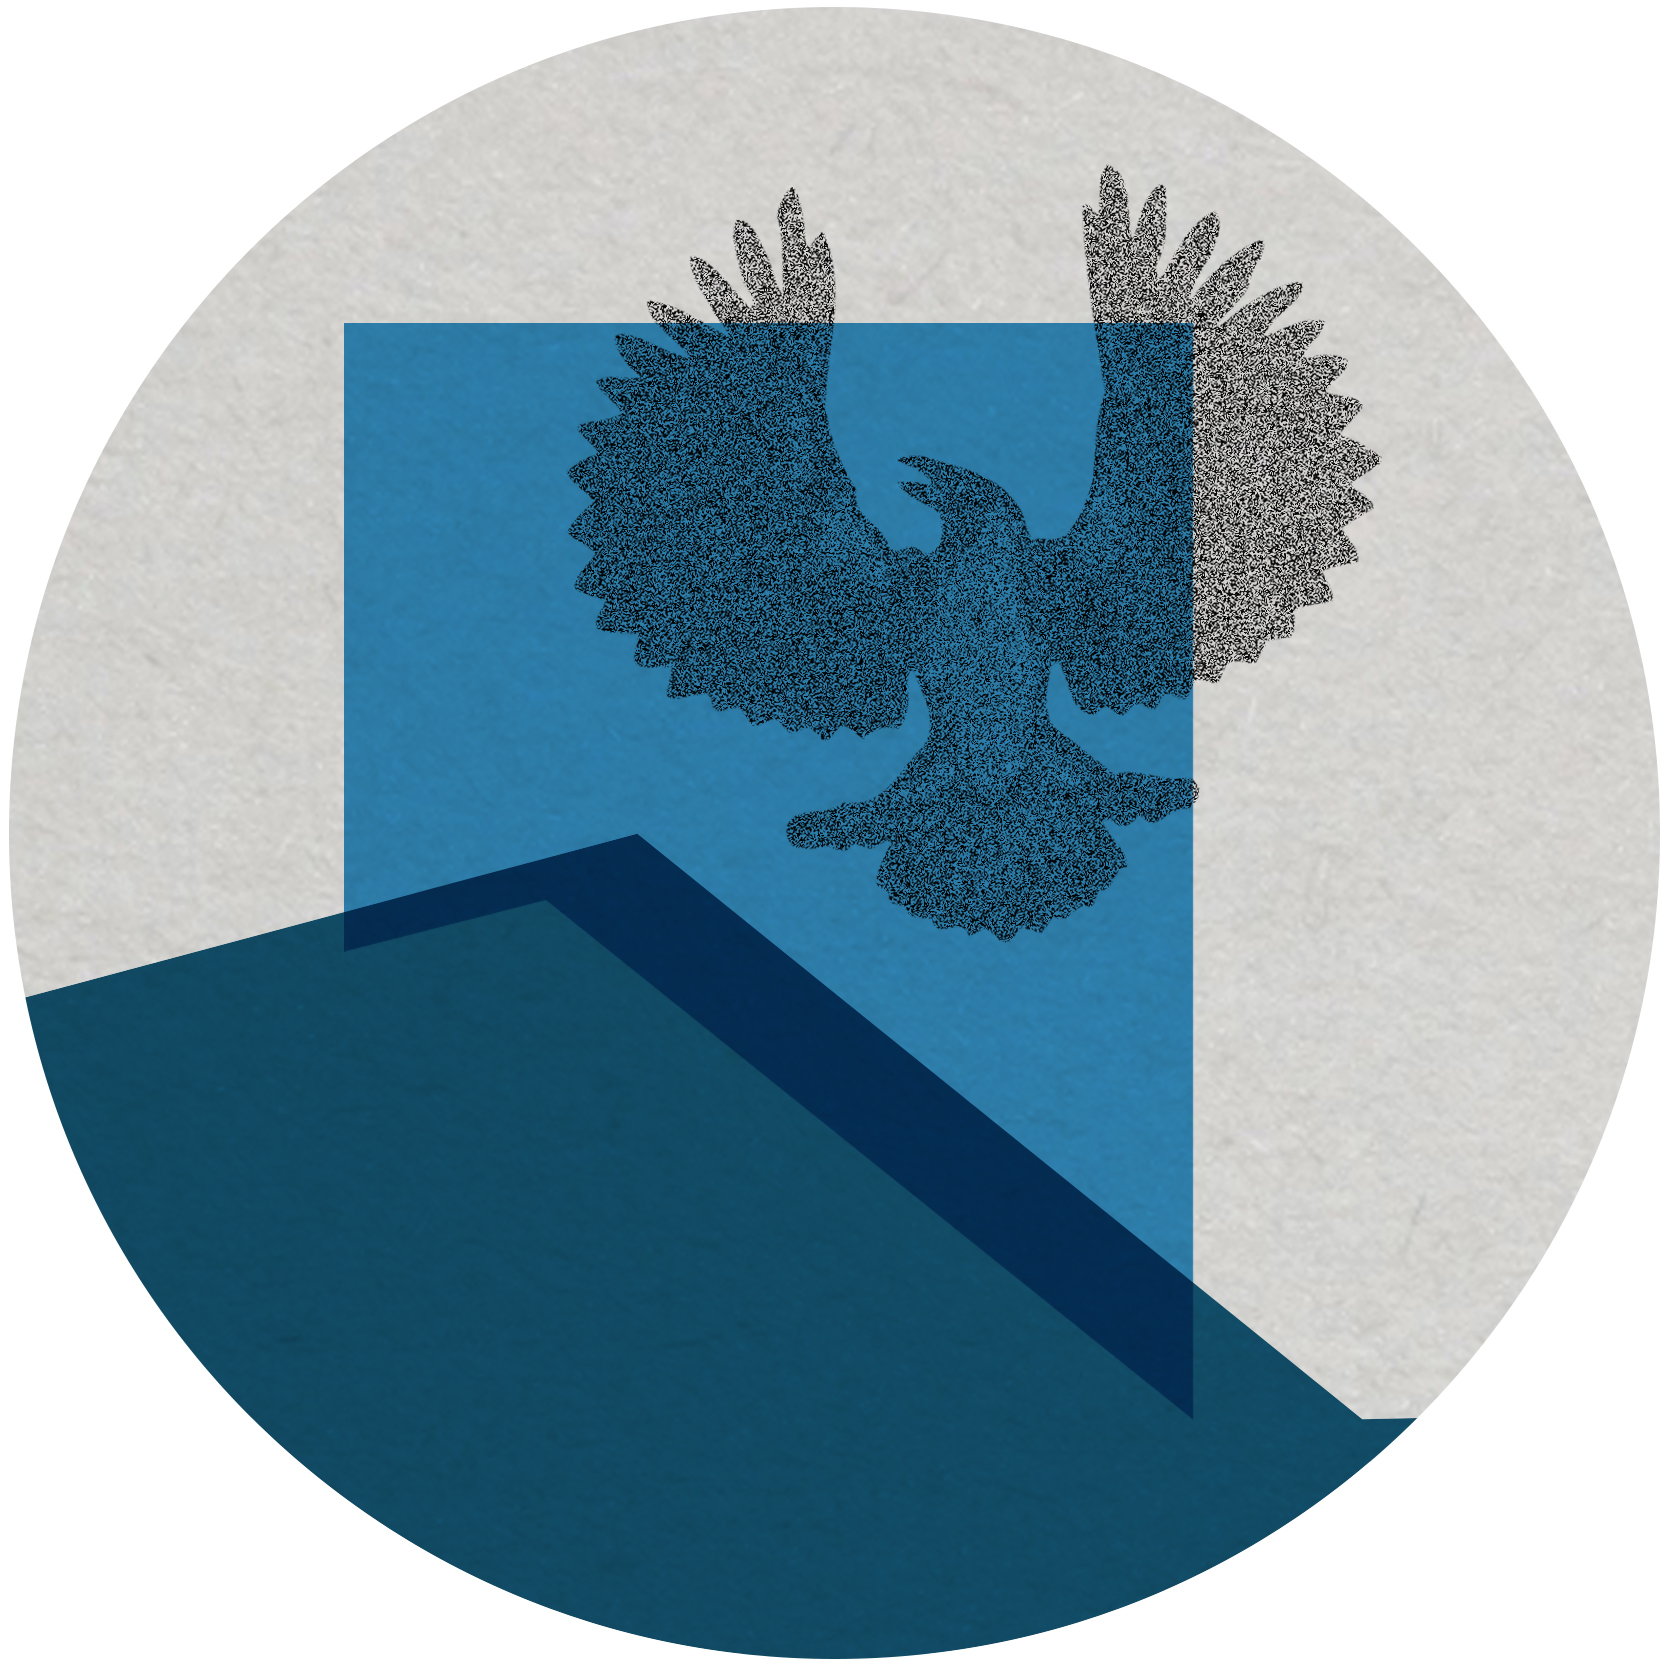 an outline of the state of South Australia in blue, a piping shrike bird with wings spread is outlined in grey